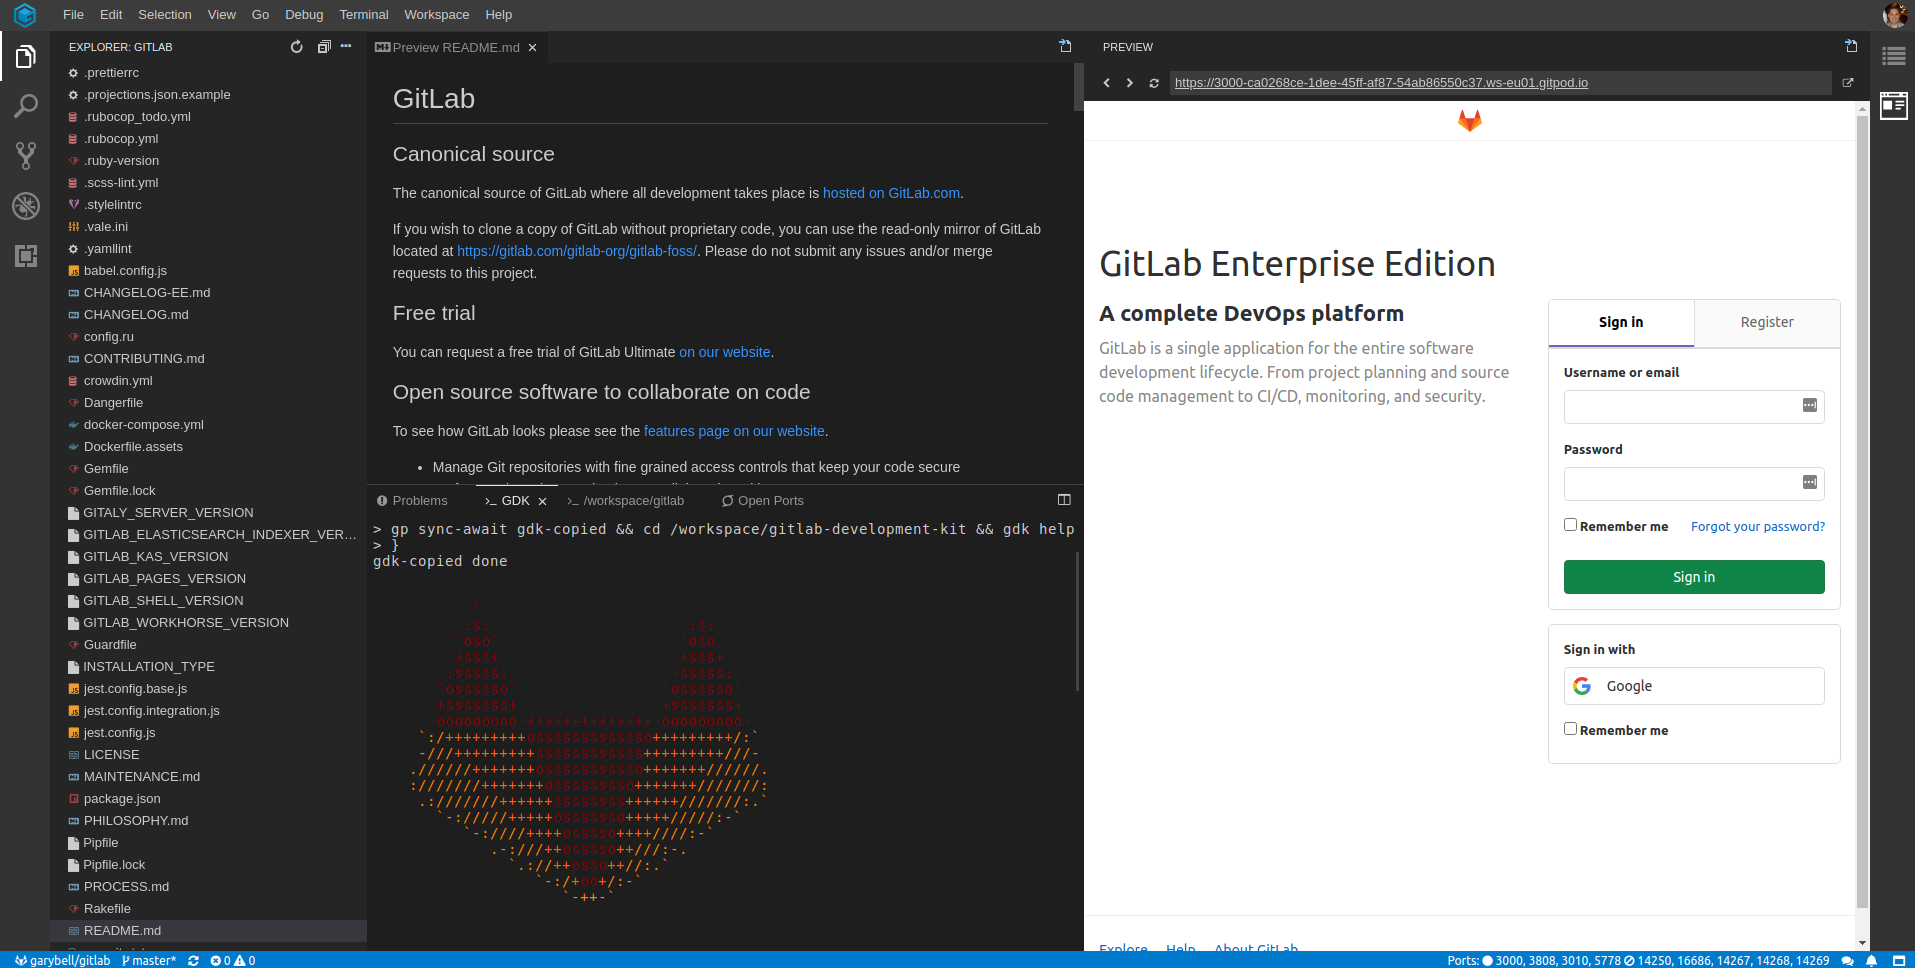 GitLab GDK within Gitpod. The README file is showing on a split screen with the login screen.